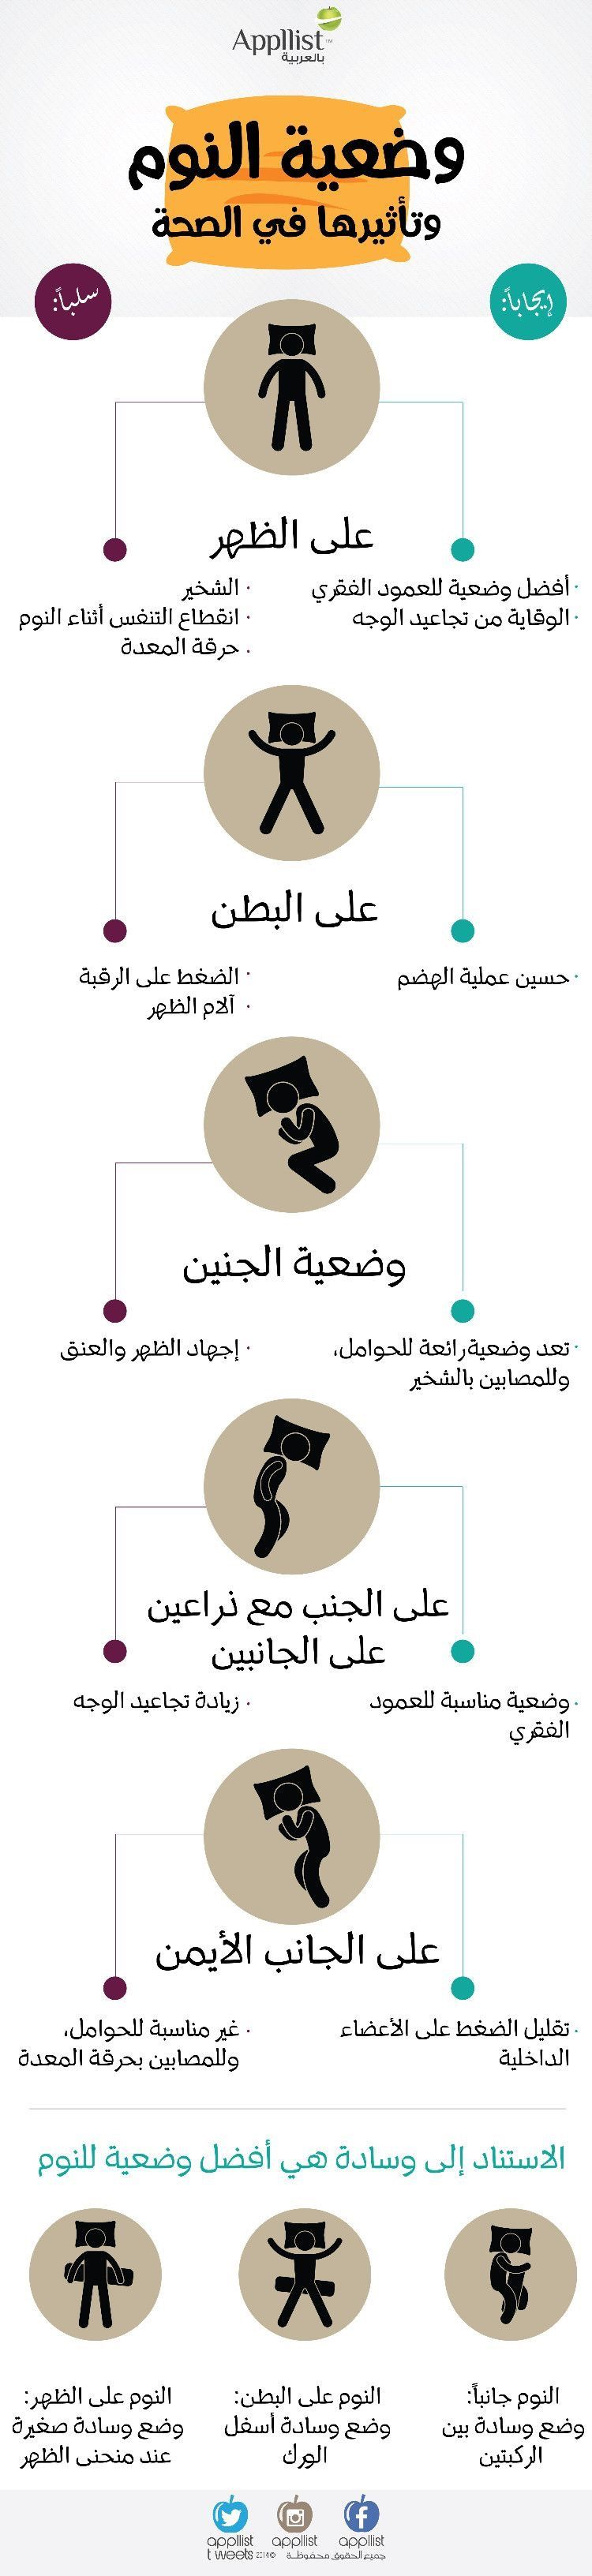 Pin By Loulou On انفوجرافيك Health Facts Food Health Facts Health Advice